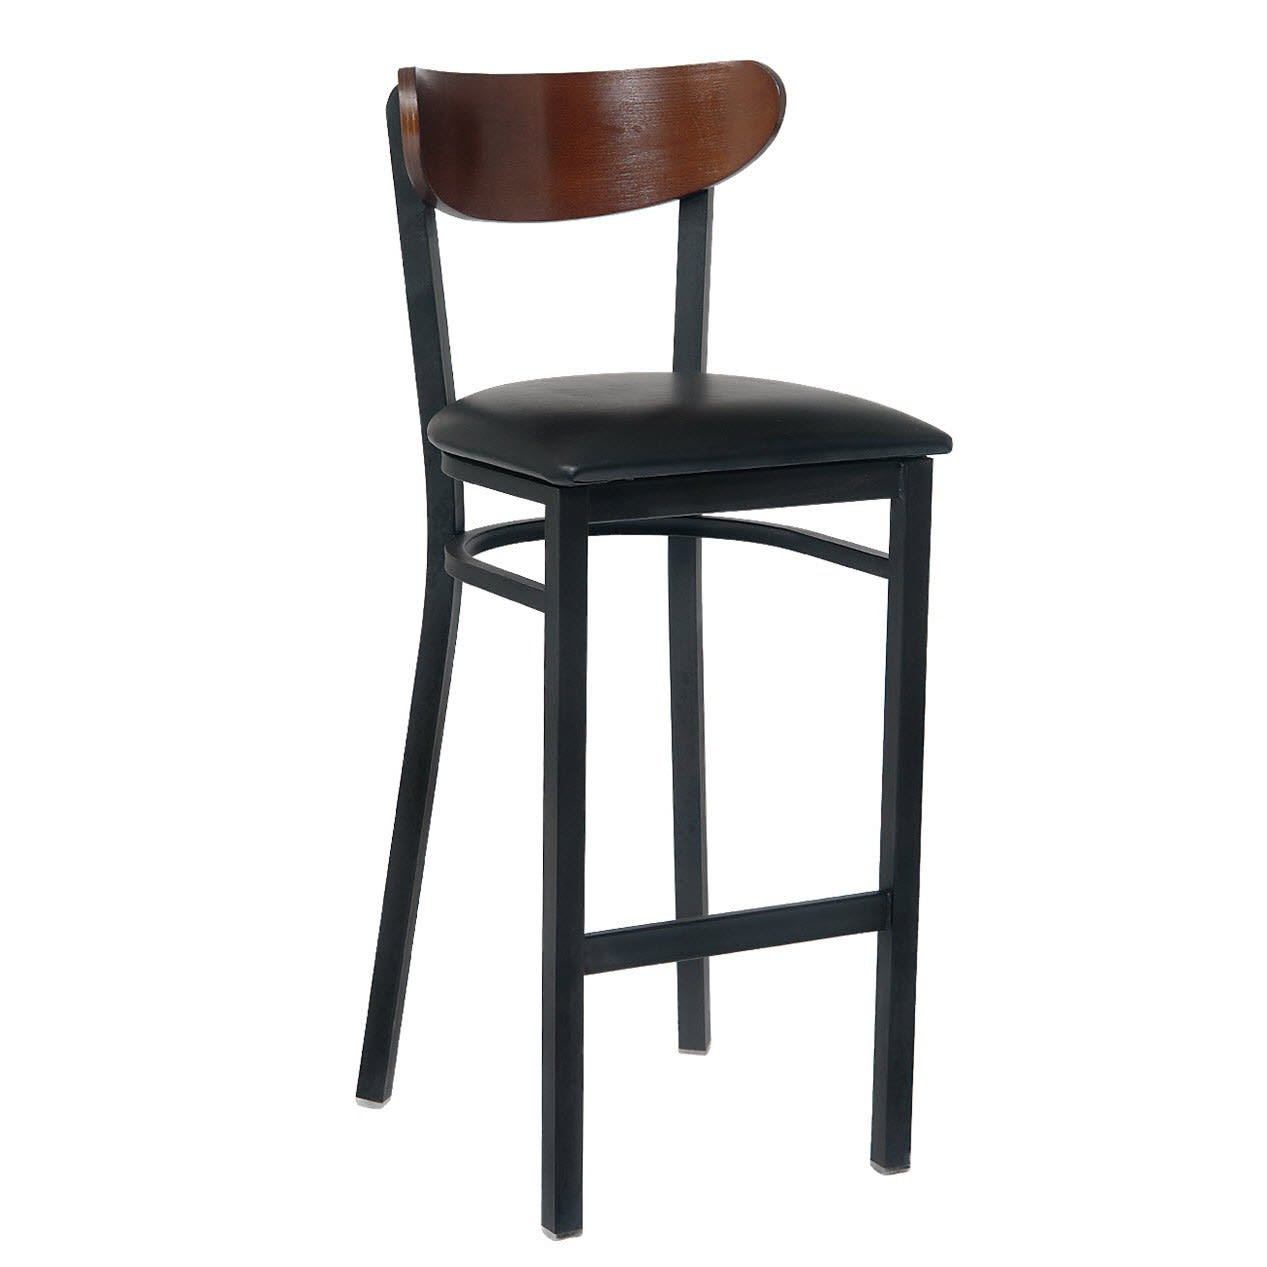 Wondrous Modern Curved Back Metal Bar Stool Squirreltailoven Fun Painted Chair Ideas Images Squirreltailovenorg